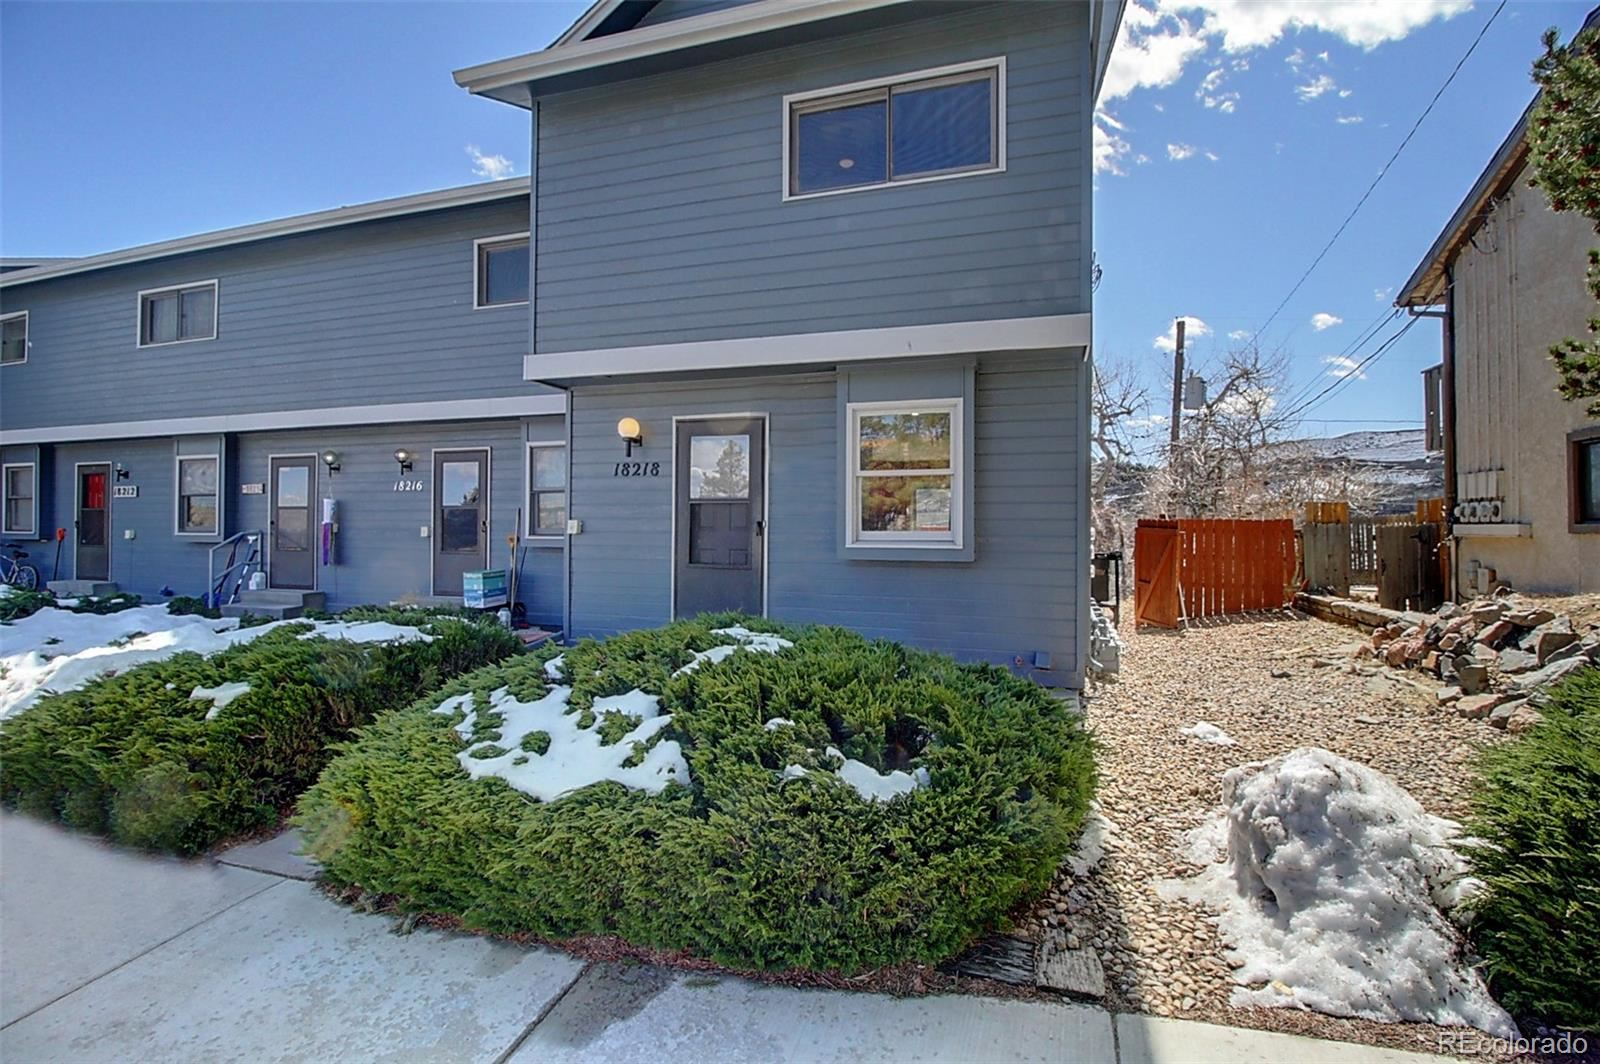 18218 W 3rd Place, Golden, CO 80401 - #: 5977669